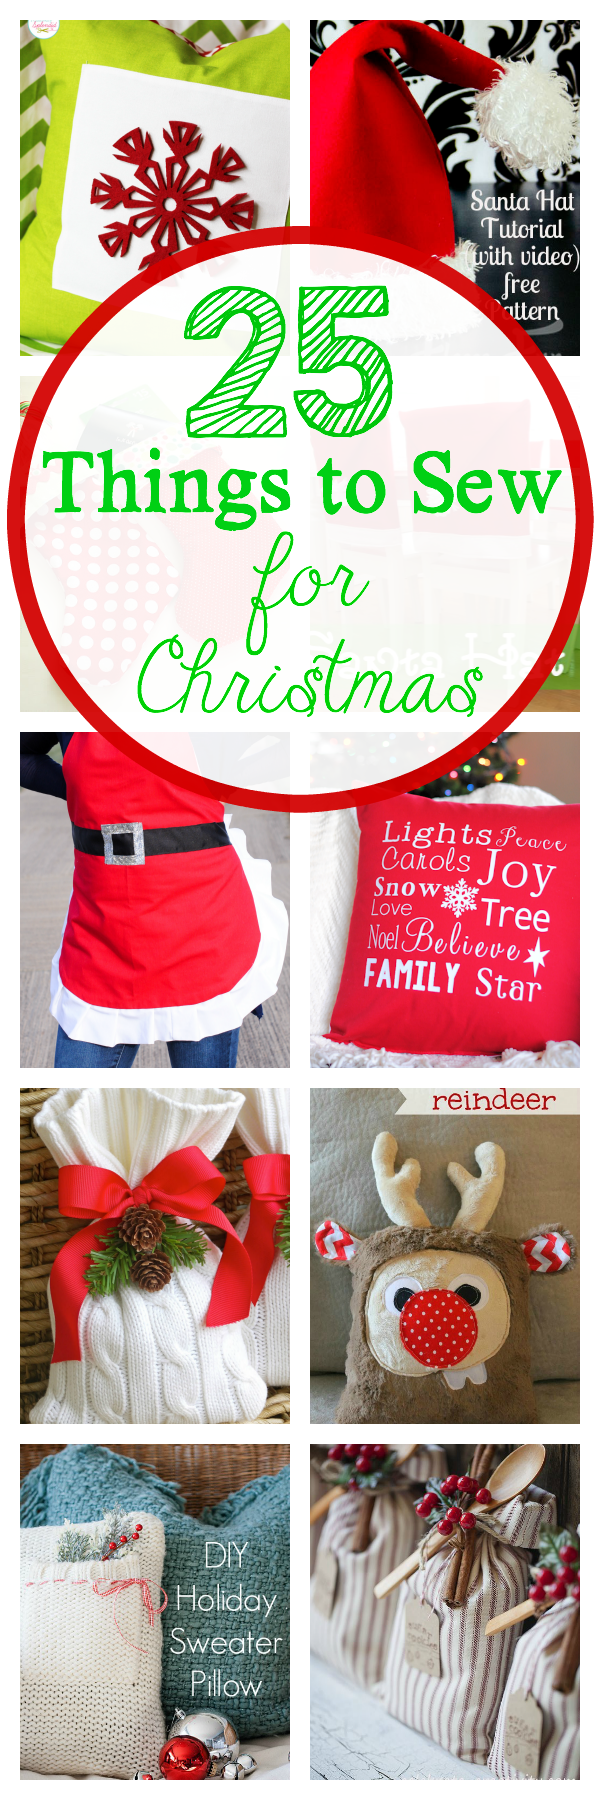 25 Things to Sew for Christmas